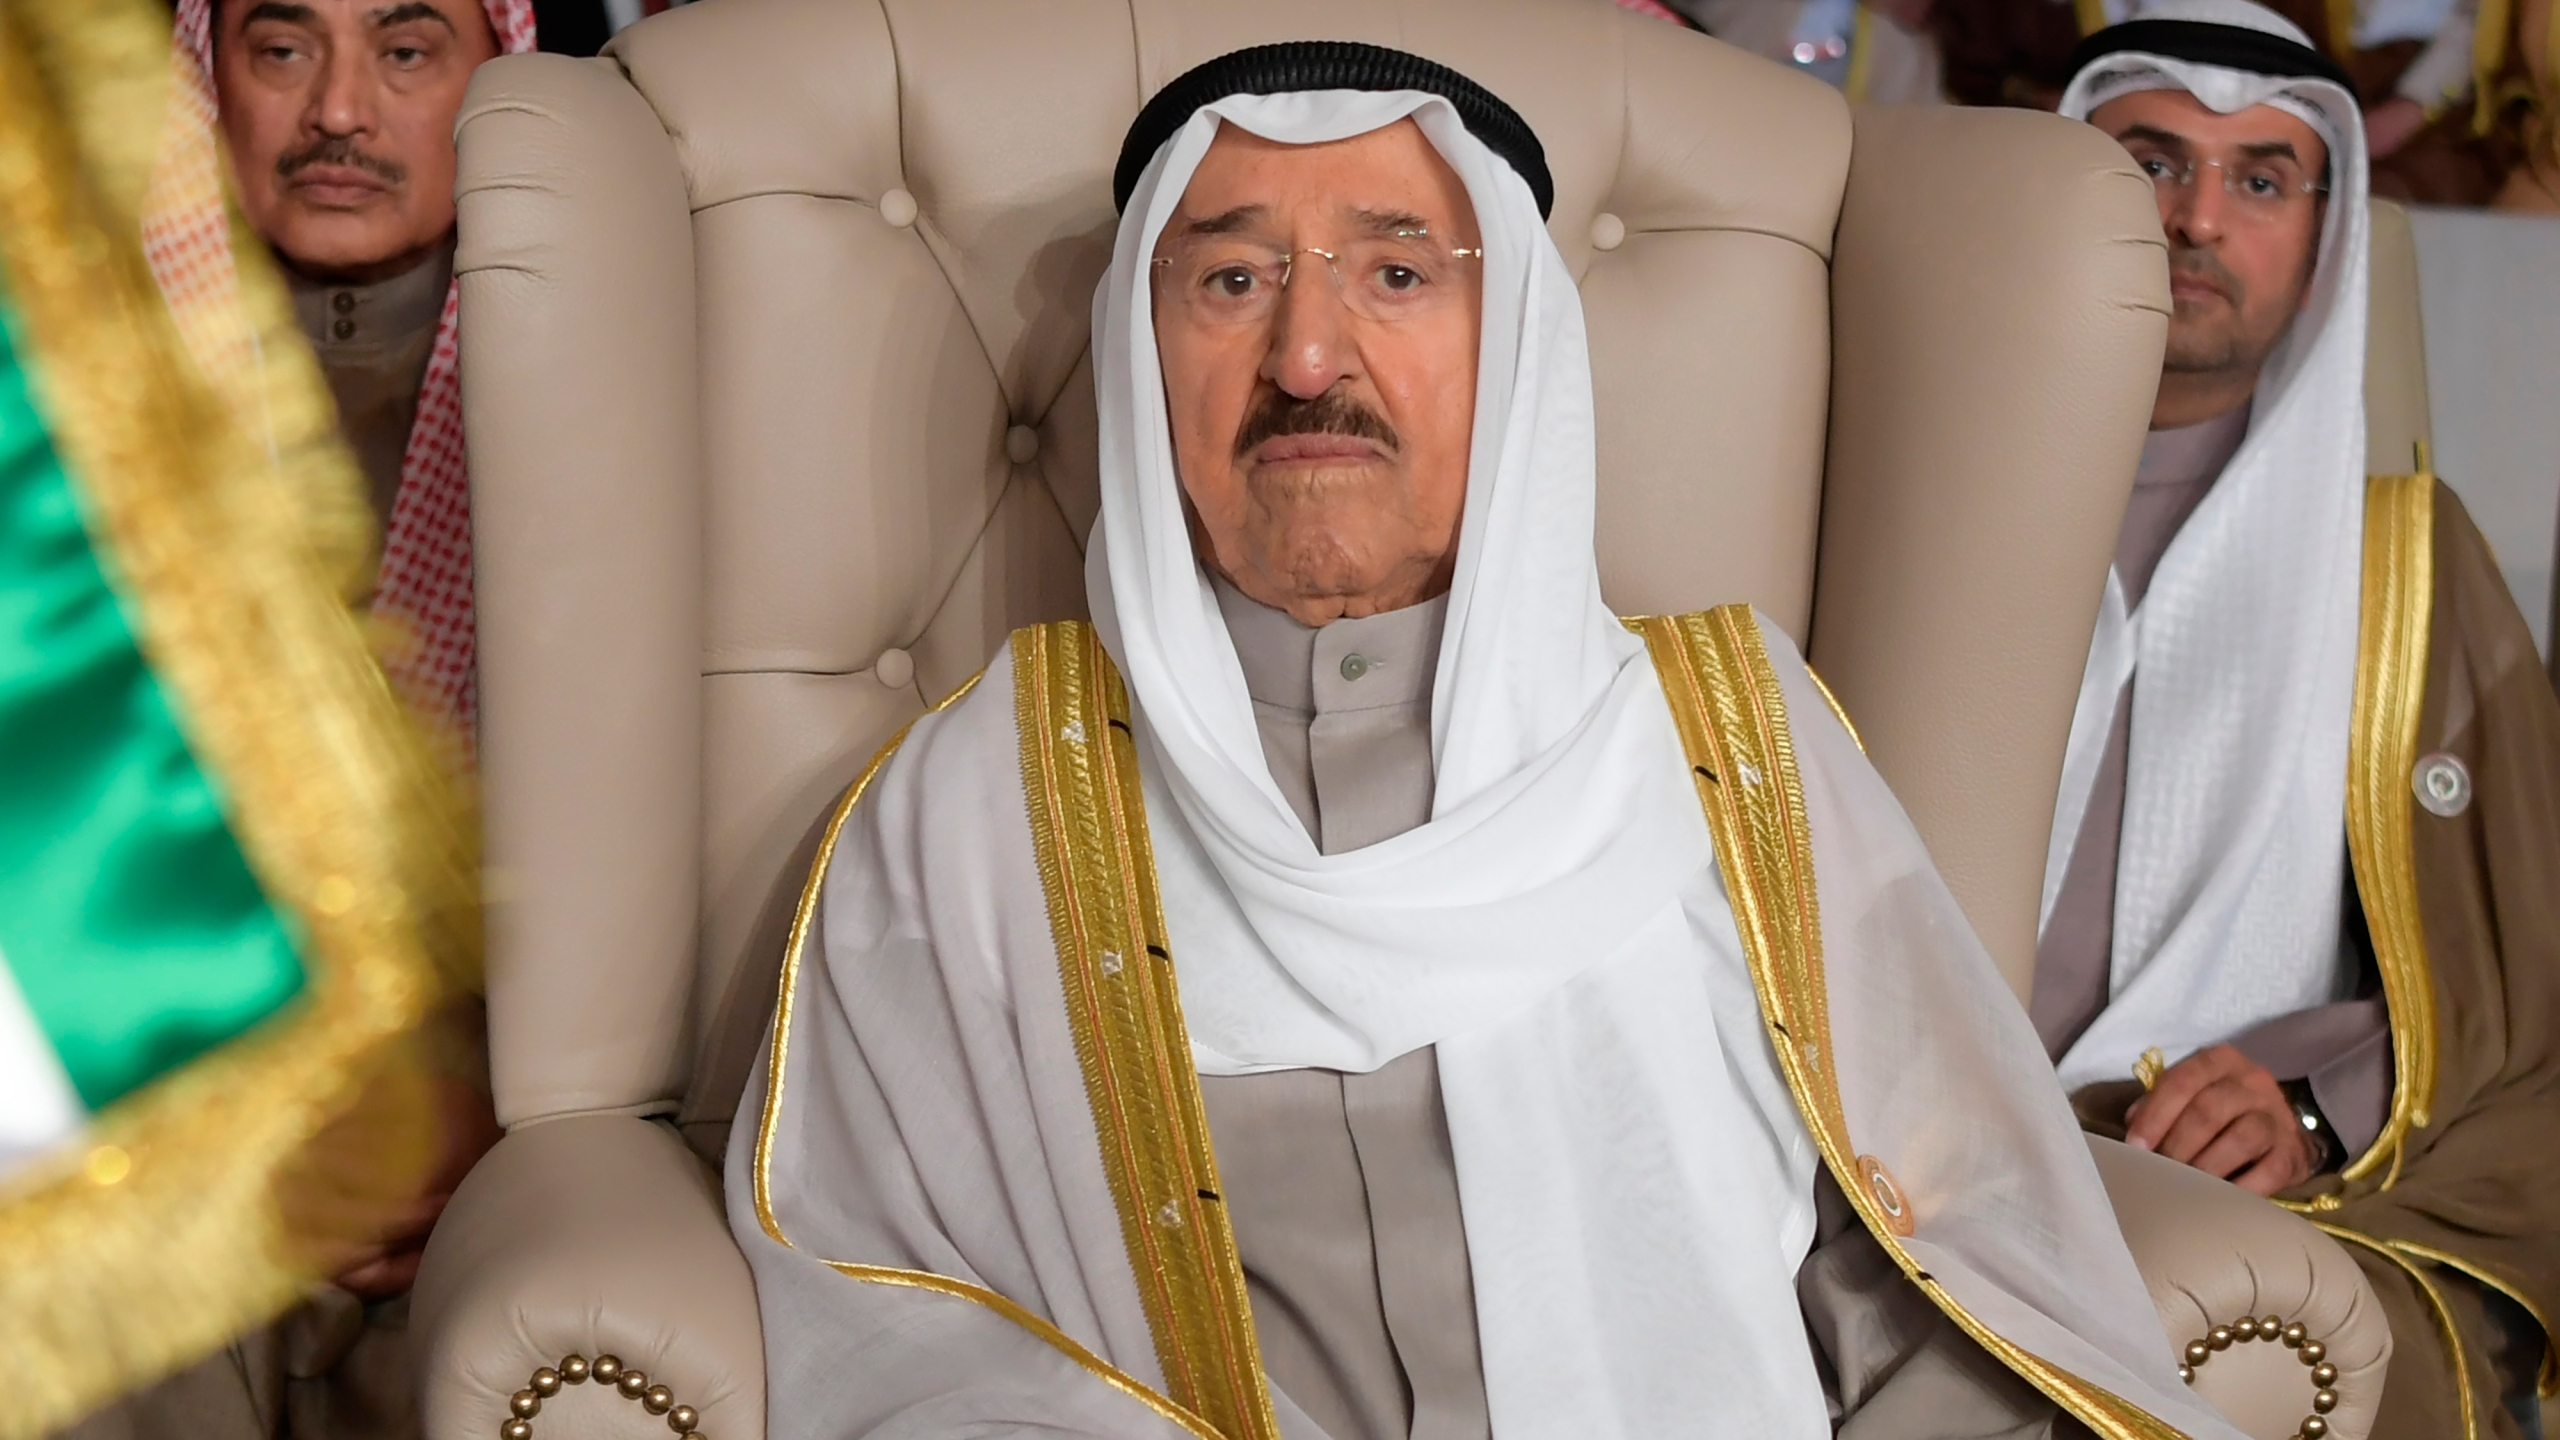 Sheikh Sabah Al Ahmad Al Sabah